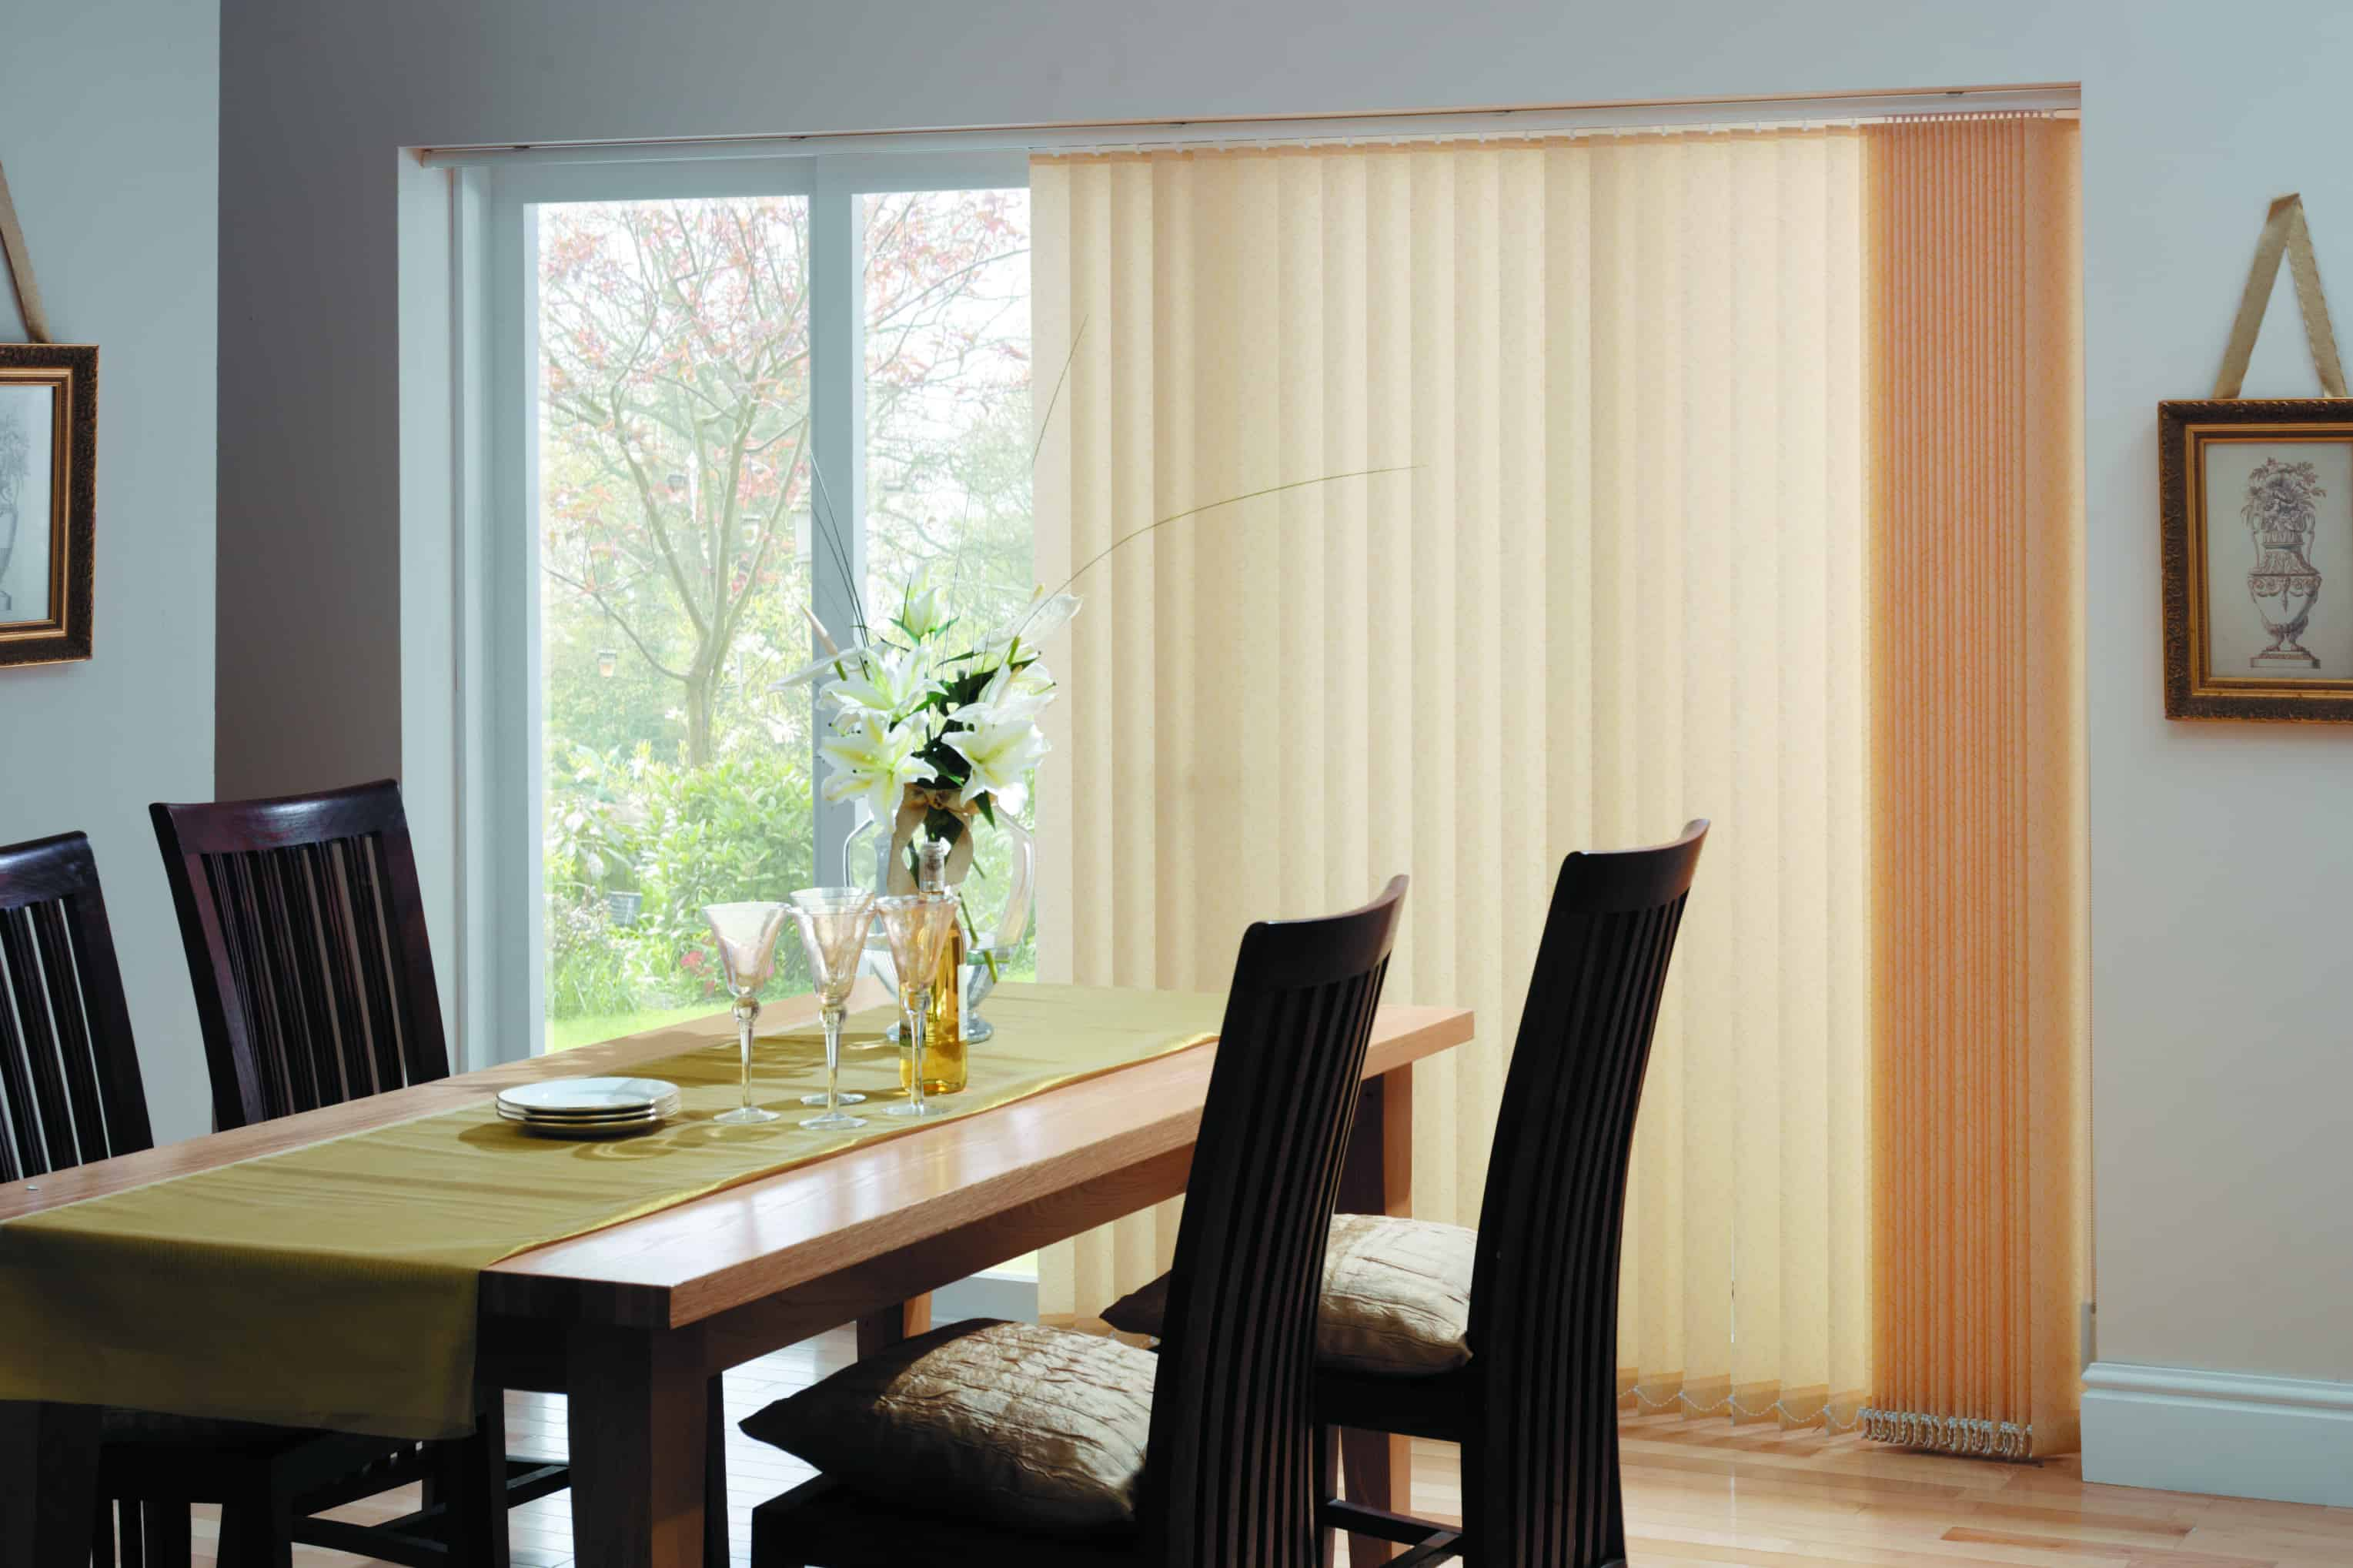 riviera window for shown search replacement eyebrow in google the regular leg ideas material extended type slats replacementenards curtains treatment vertical supplier levolor shades displaying hardware roller parts roll blinds philippines